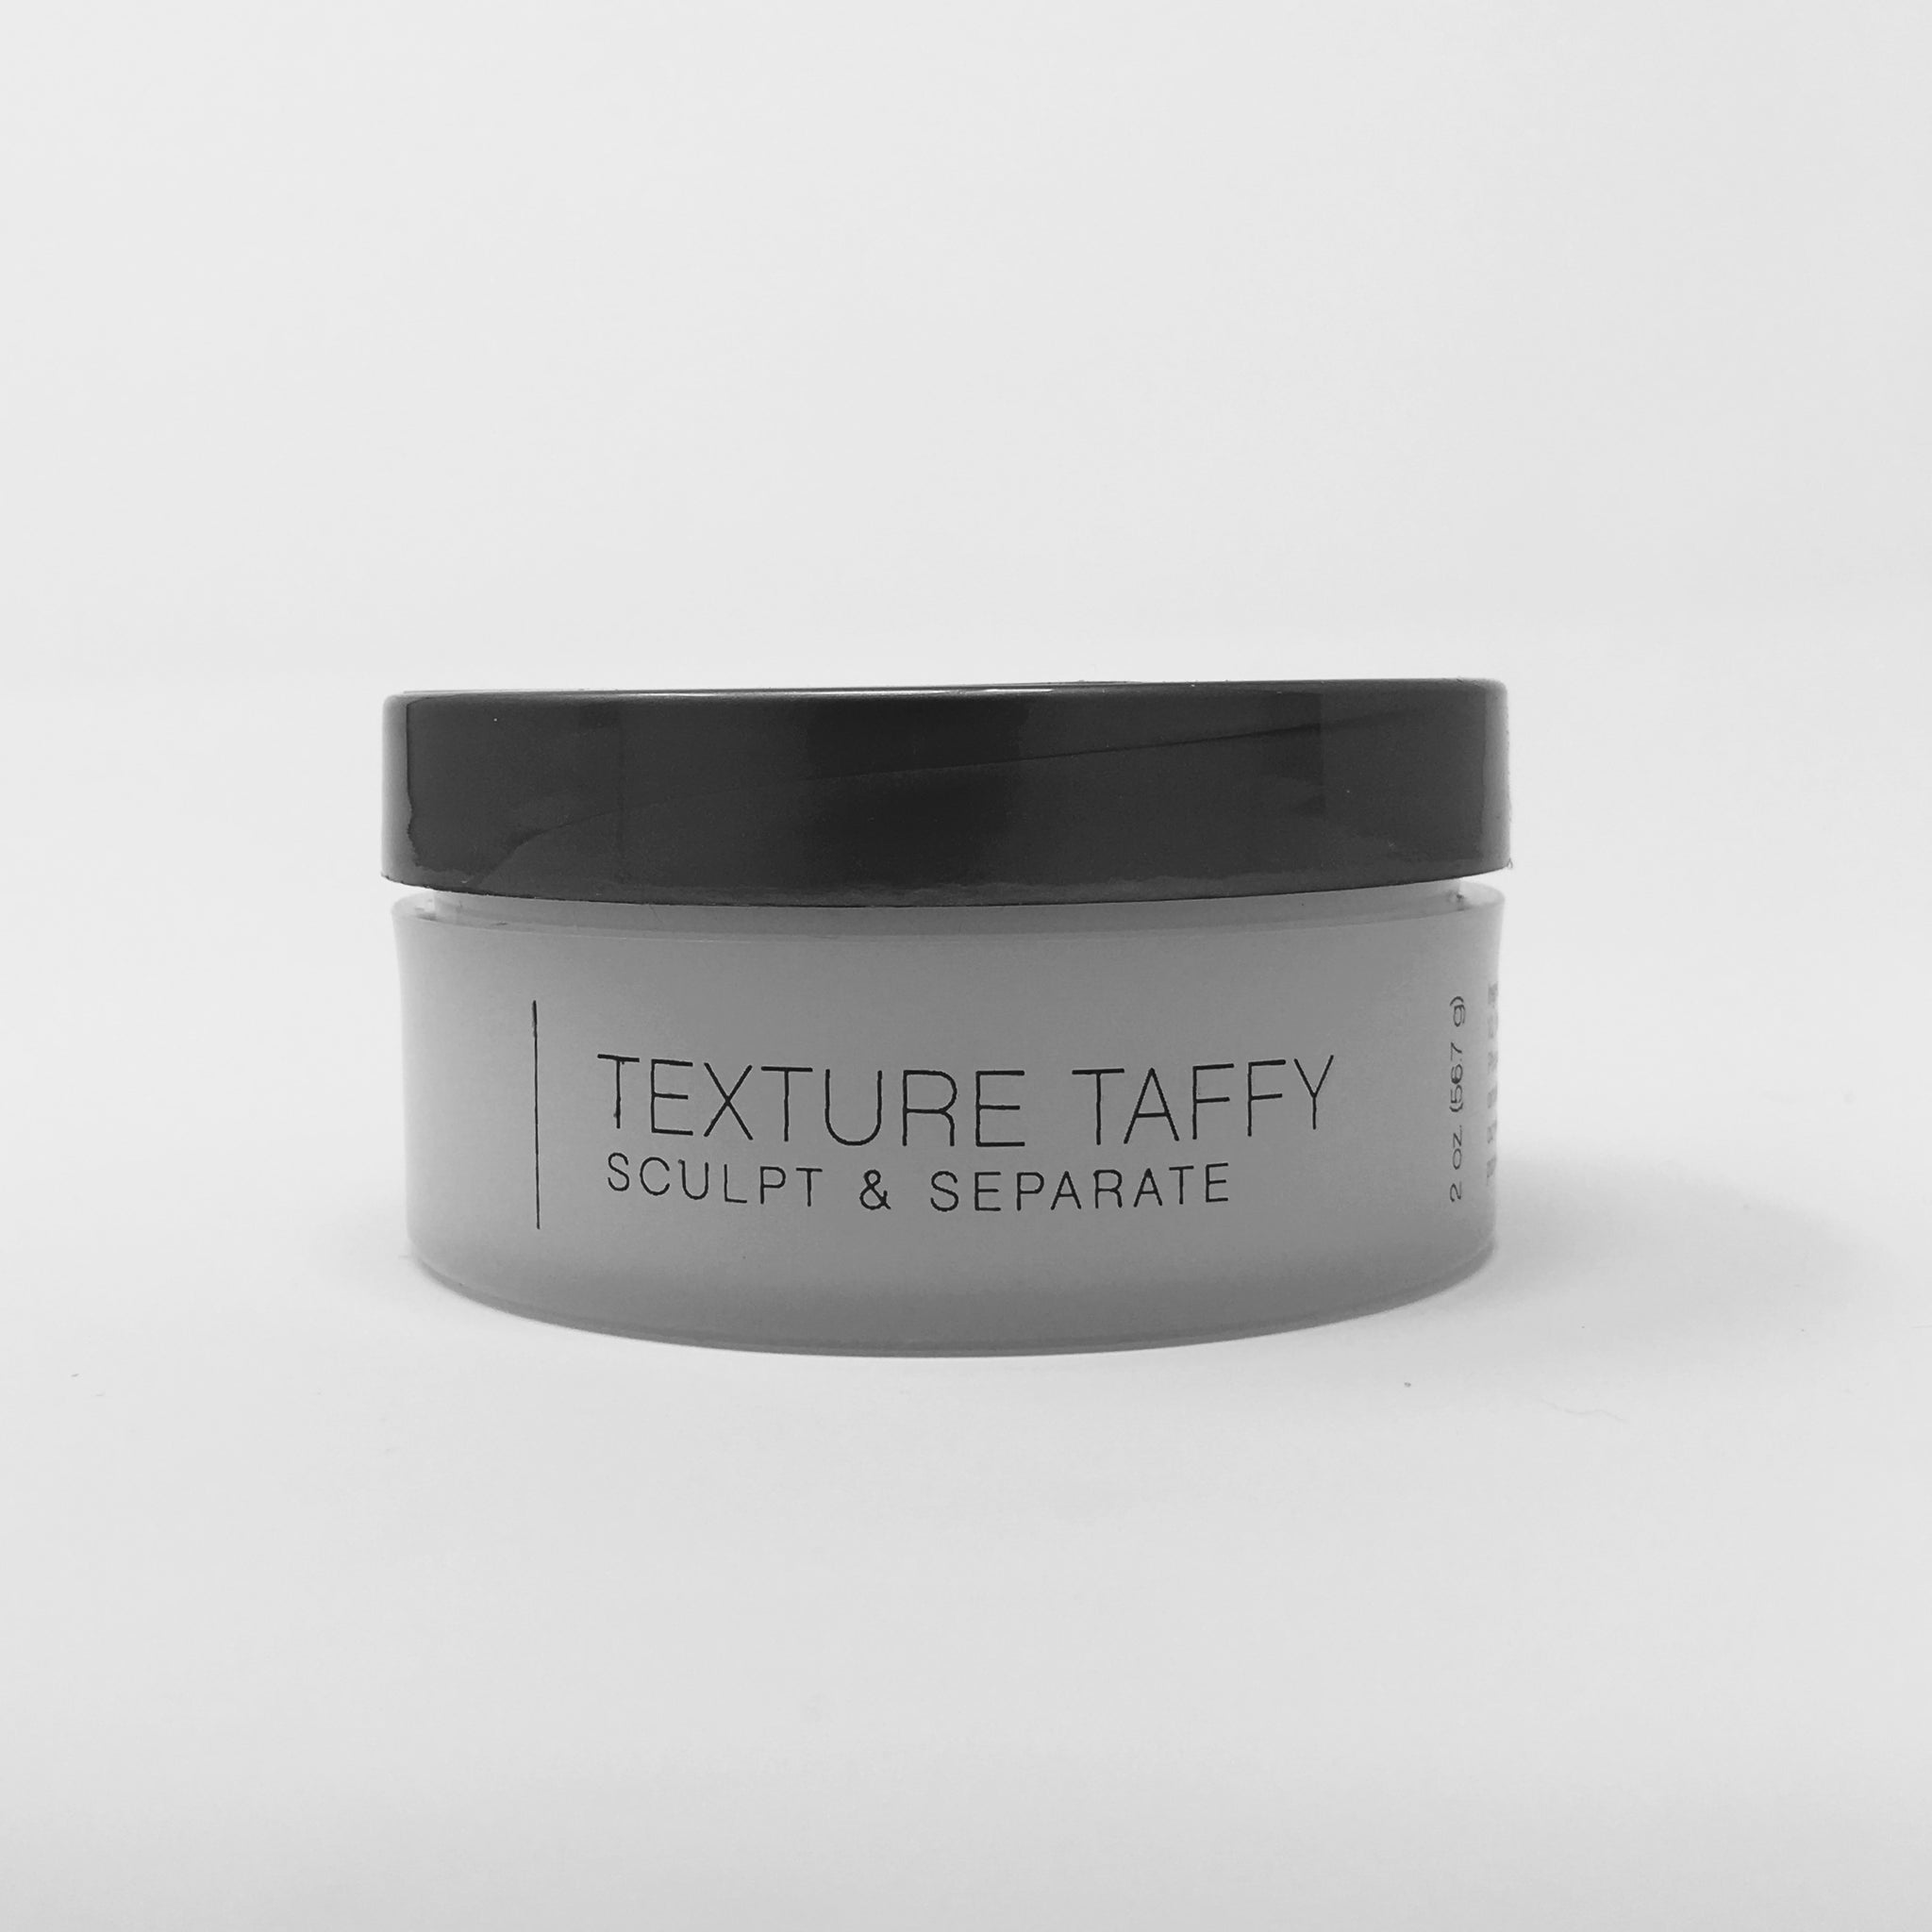 TEXTURE TAFFY pliable styling paste